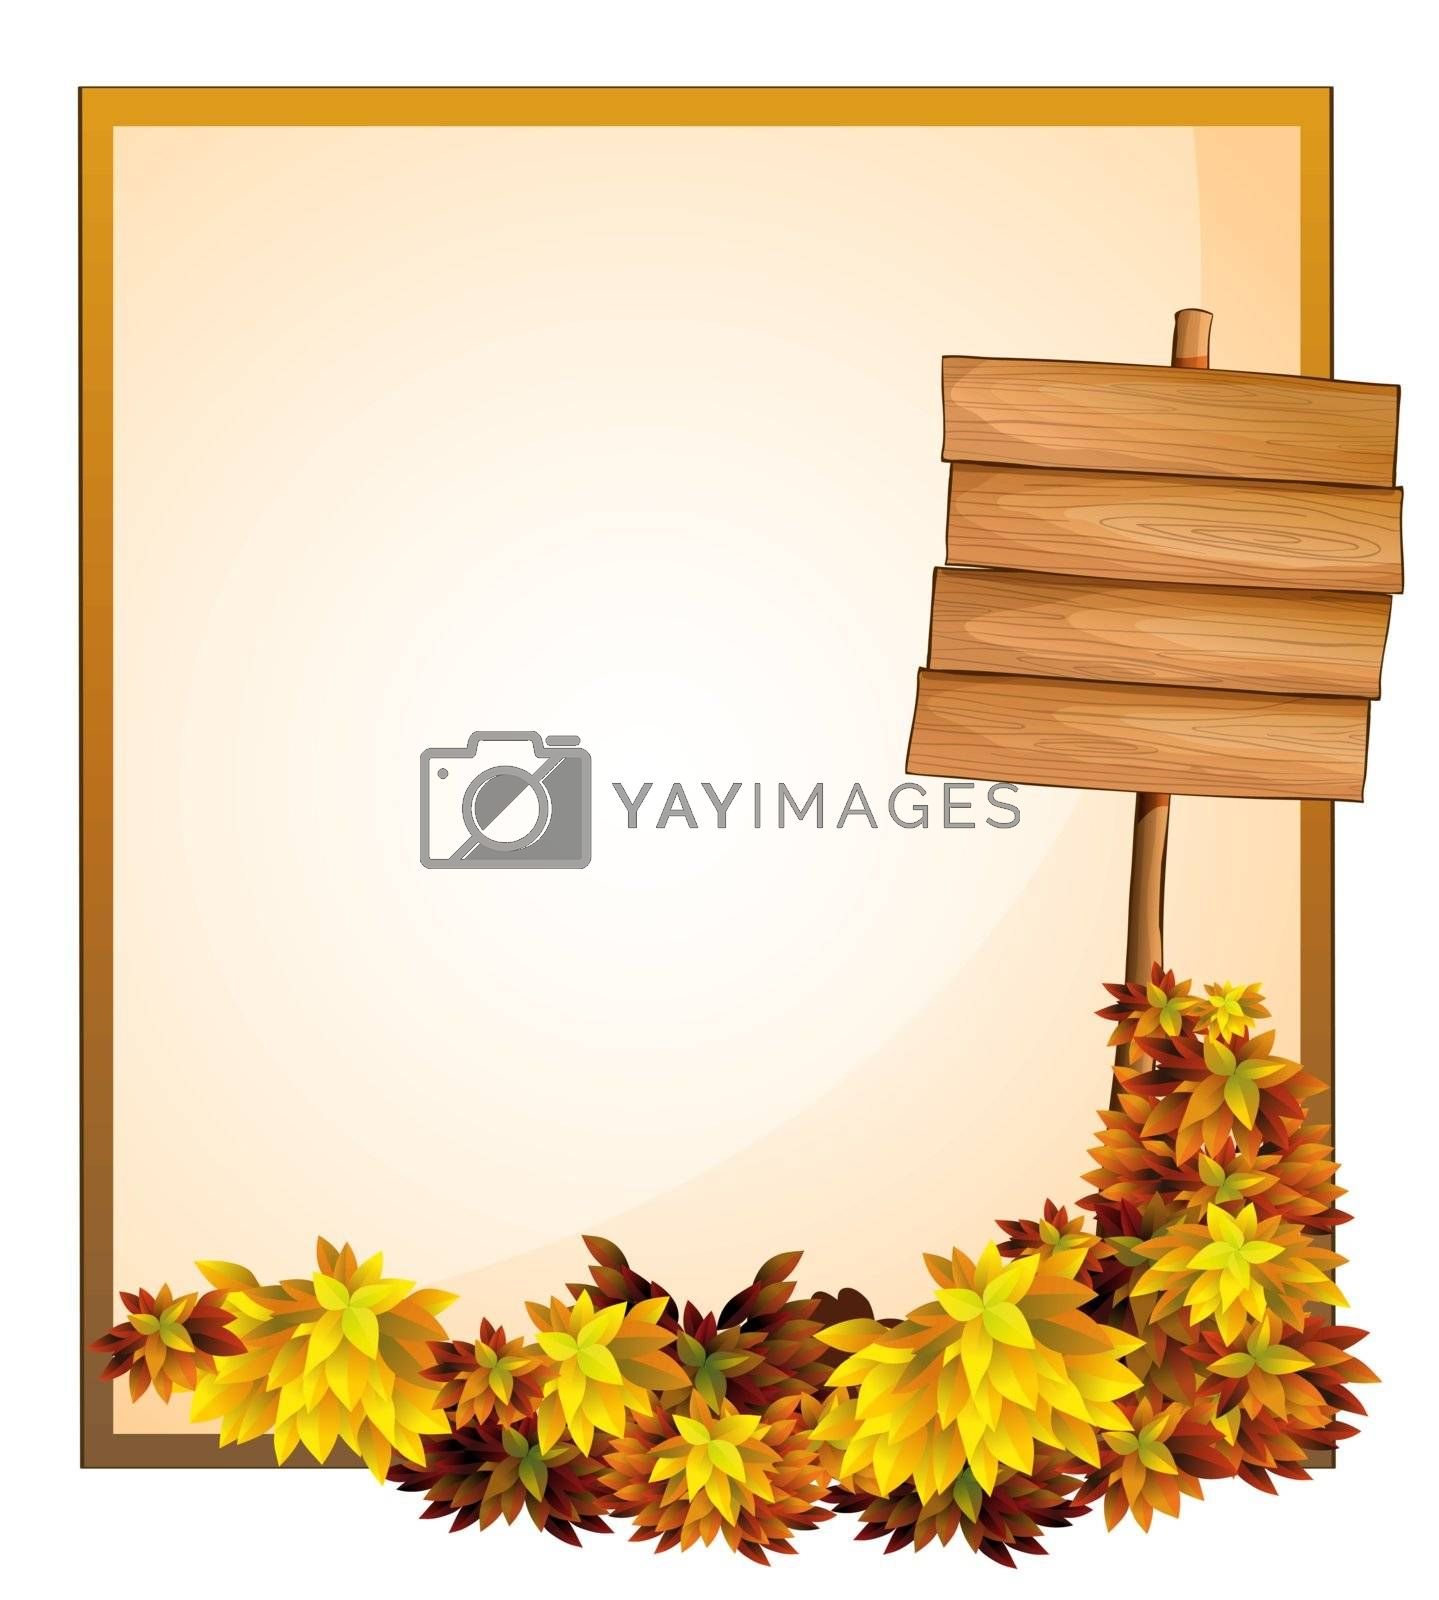 Illustration of an empty space and the empty wooden signboard on a white background